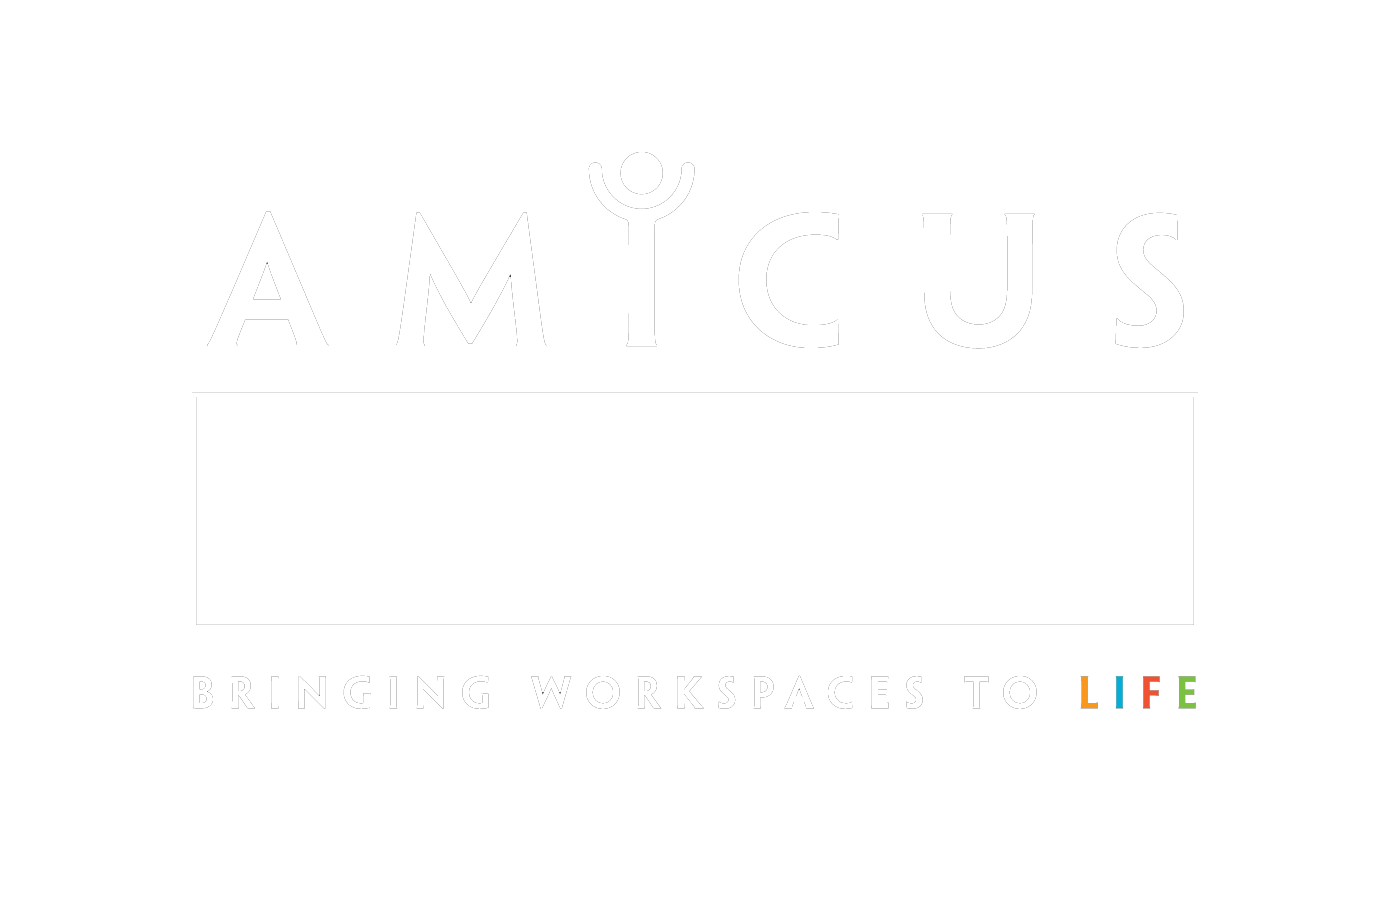 Amicus_FACILITIES_Just_Whitepsd.png